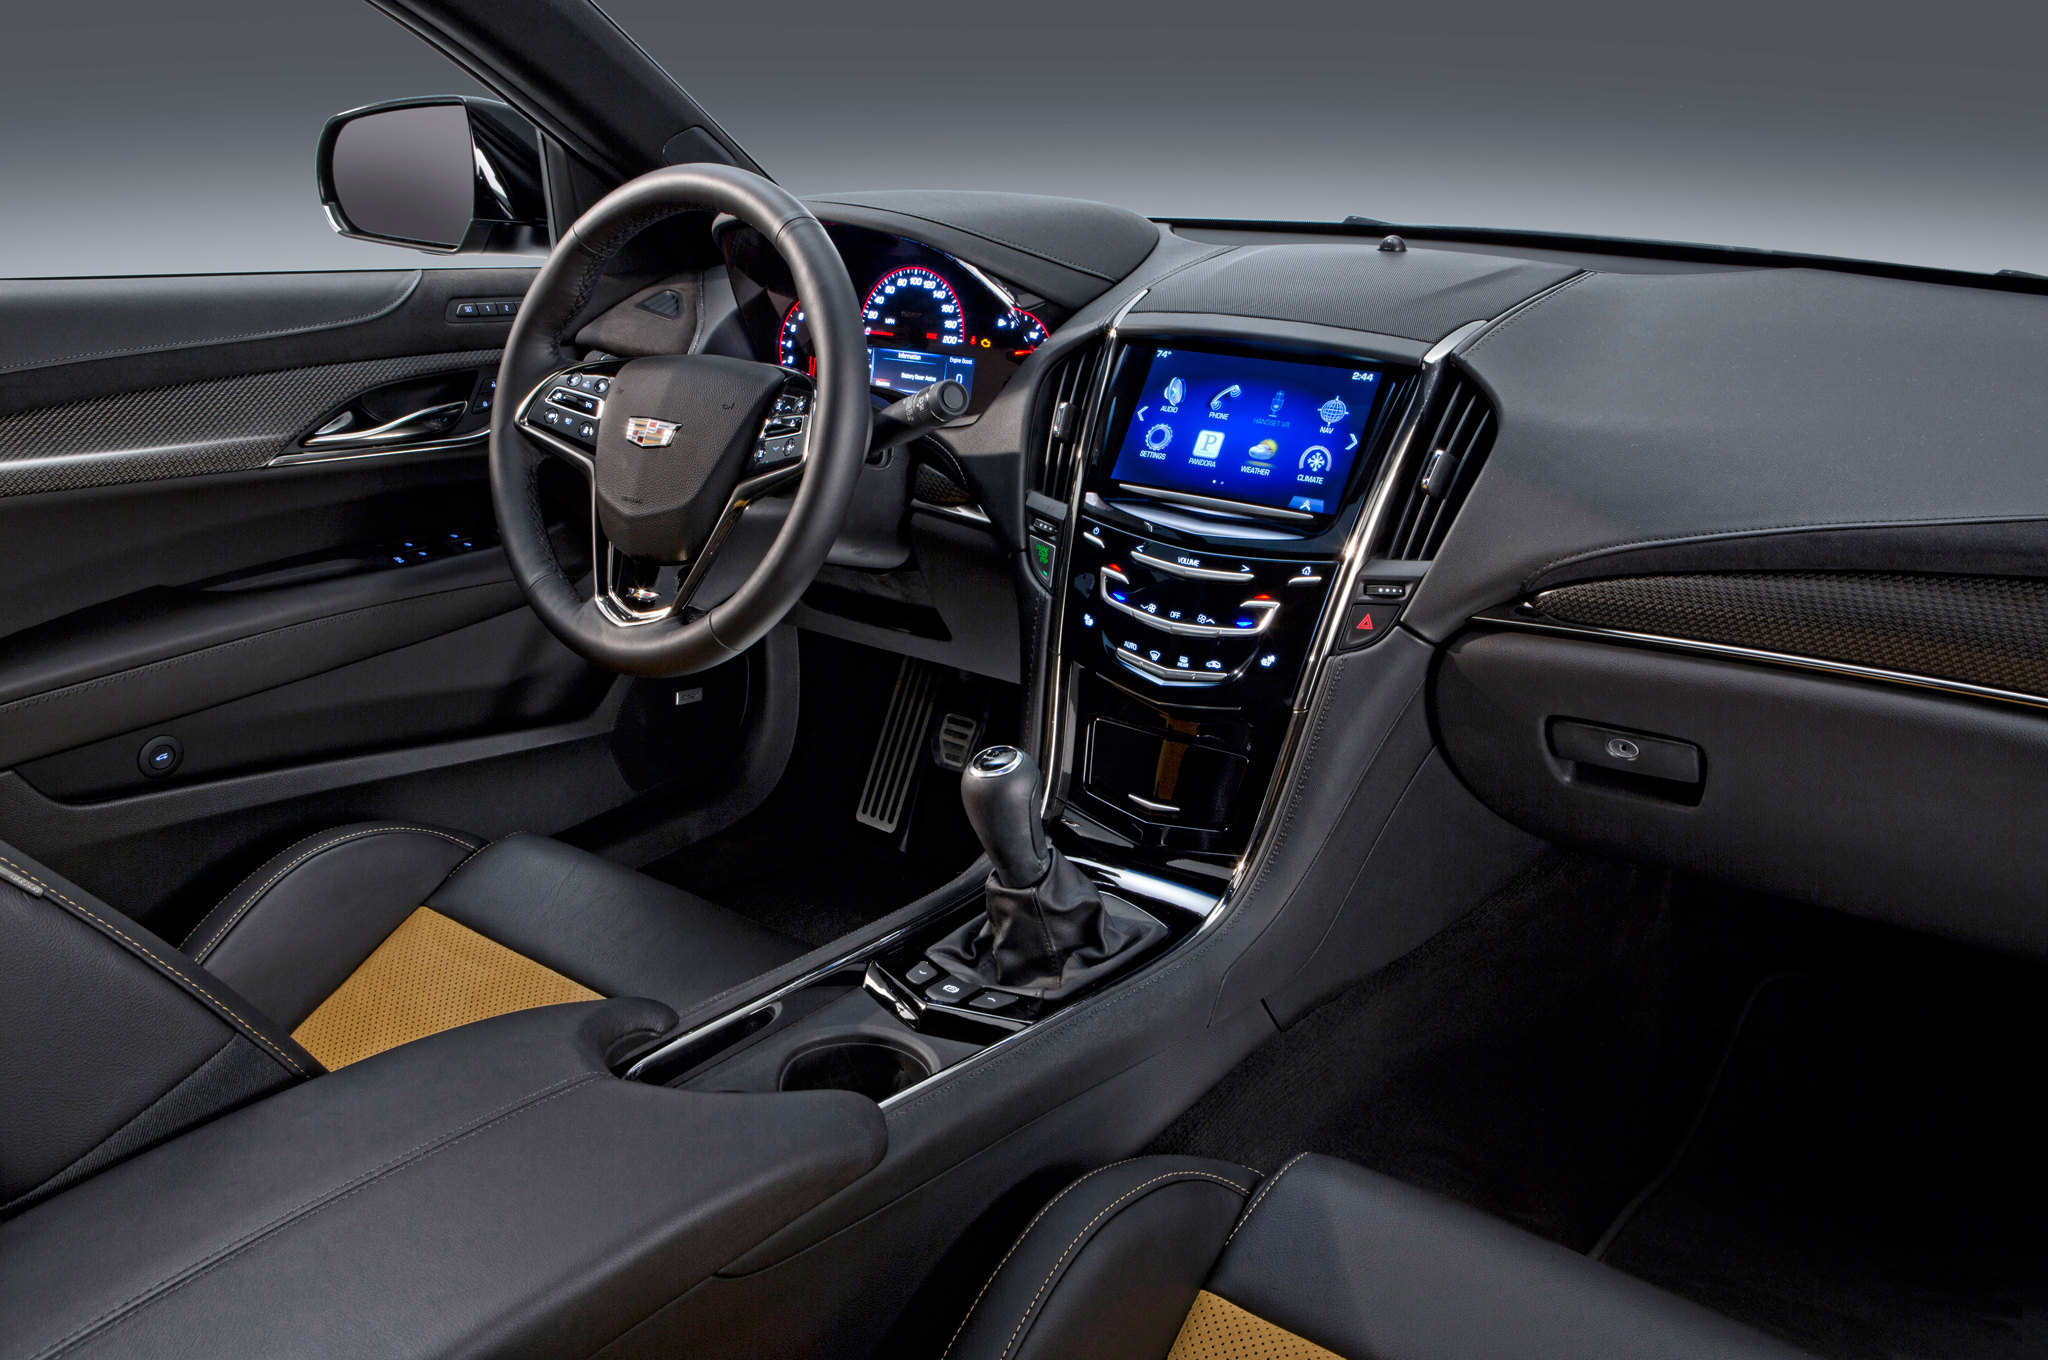 2016 Cadillac Ats V Interior Dashboard (View 4 of 18)